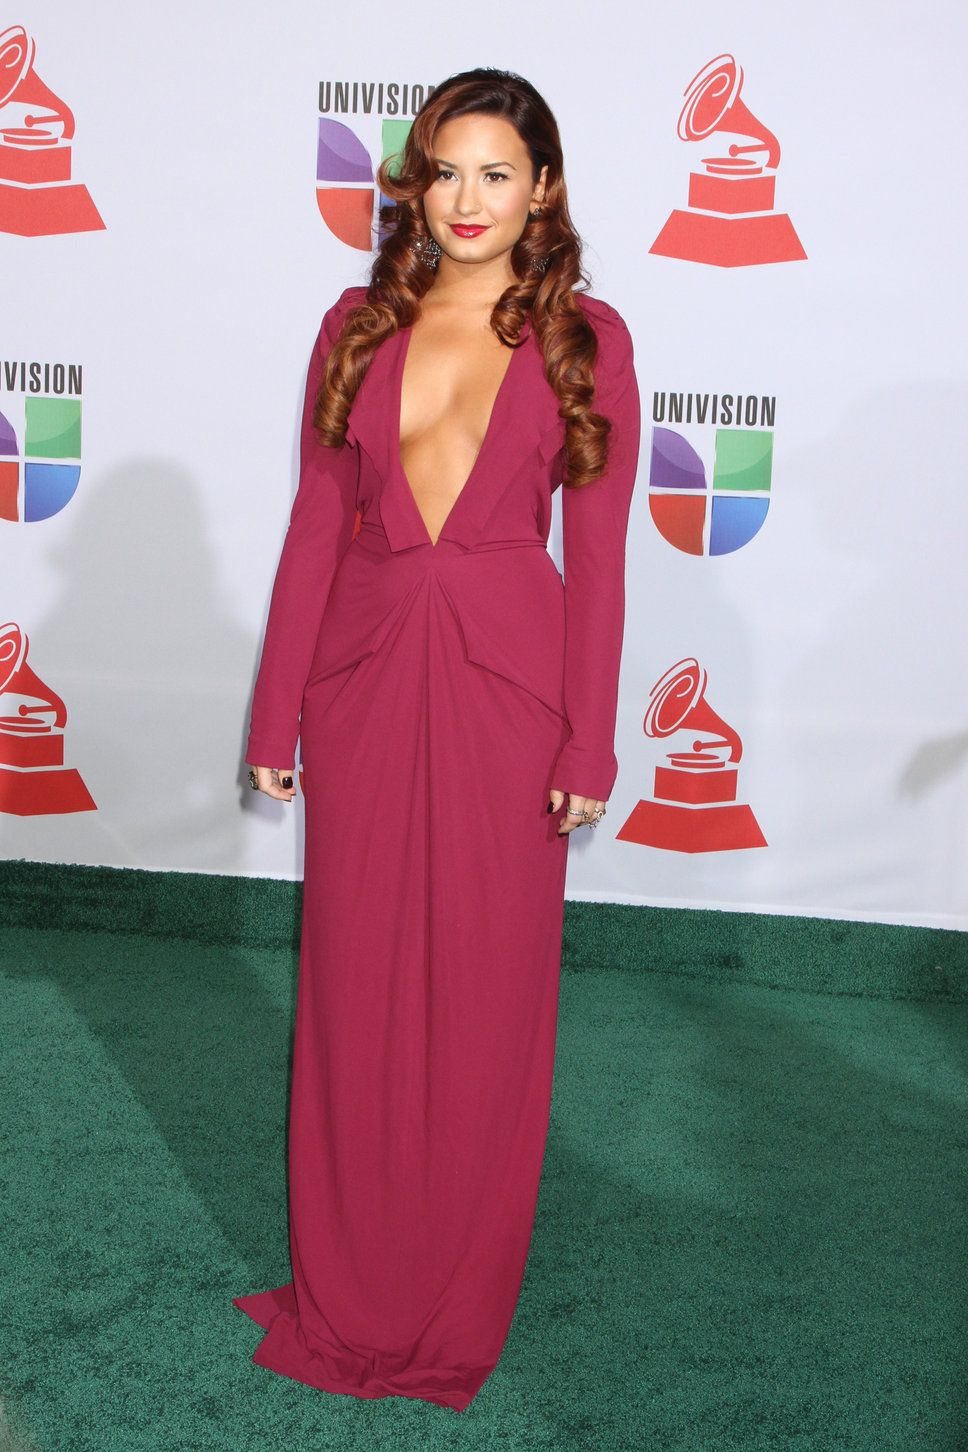 Demi Lovato dresses | Demi Lovato pink dress with plunging ...